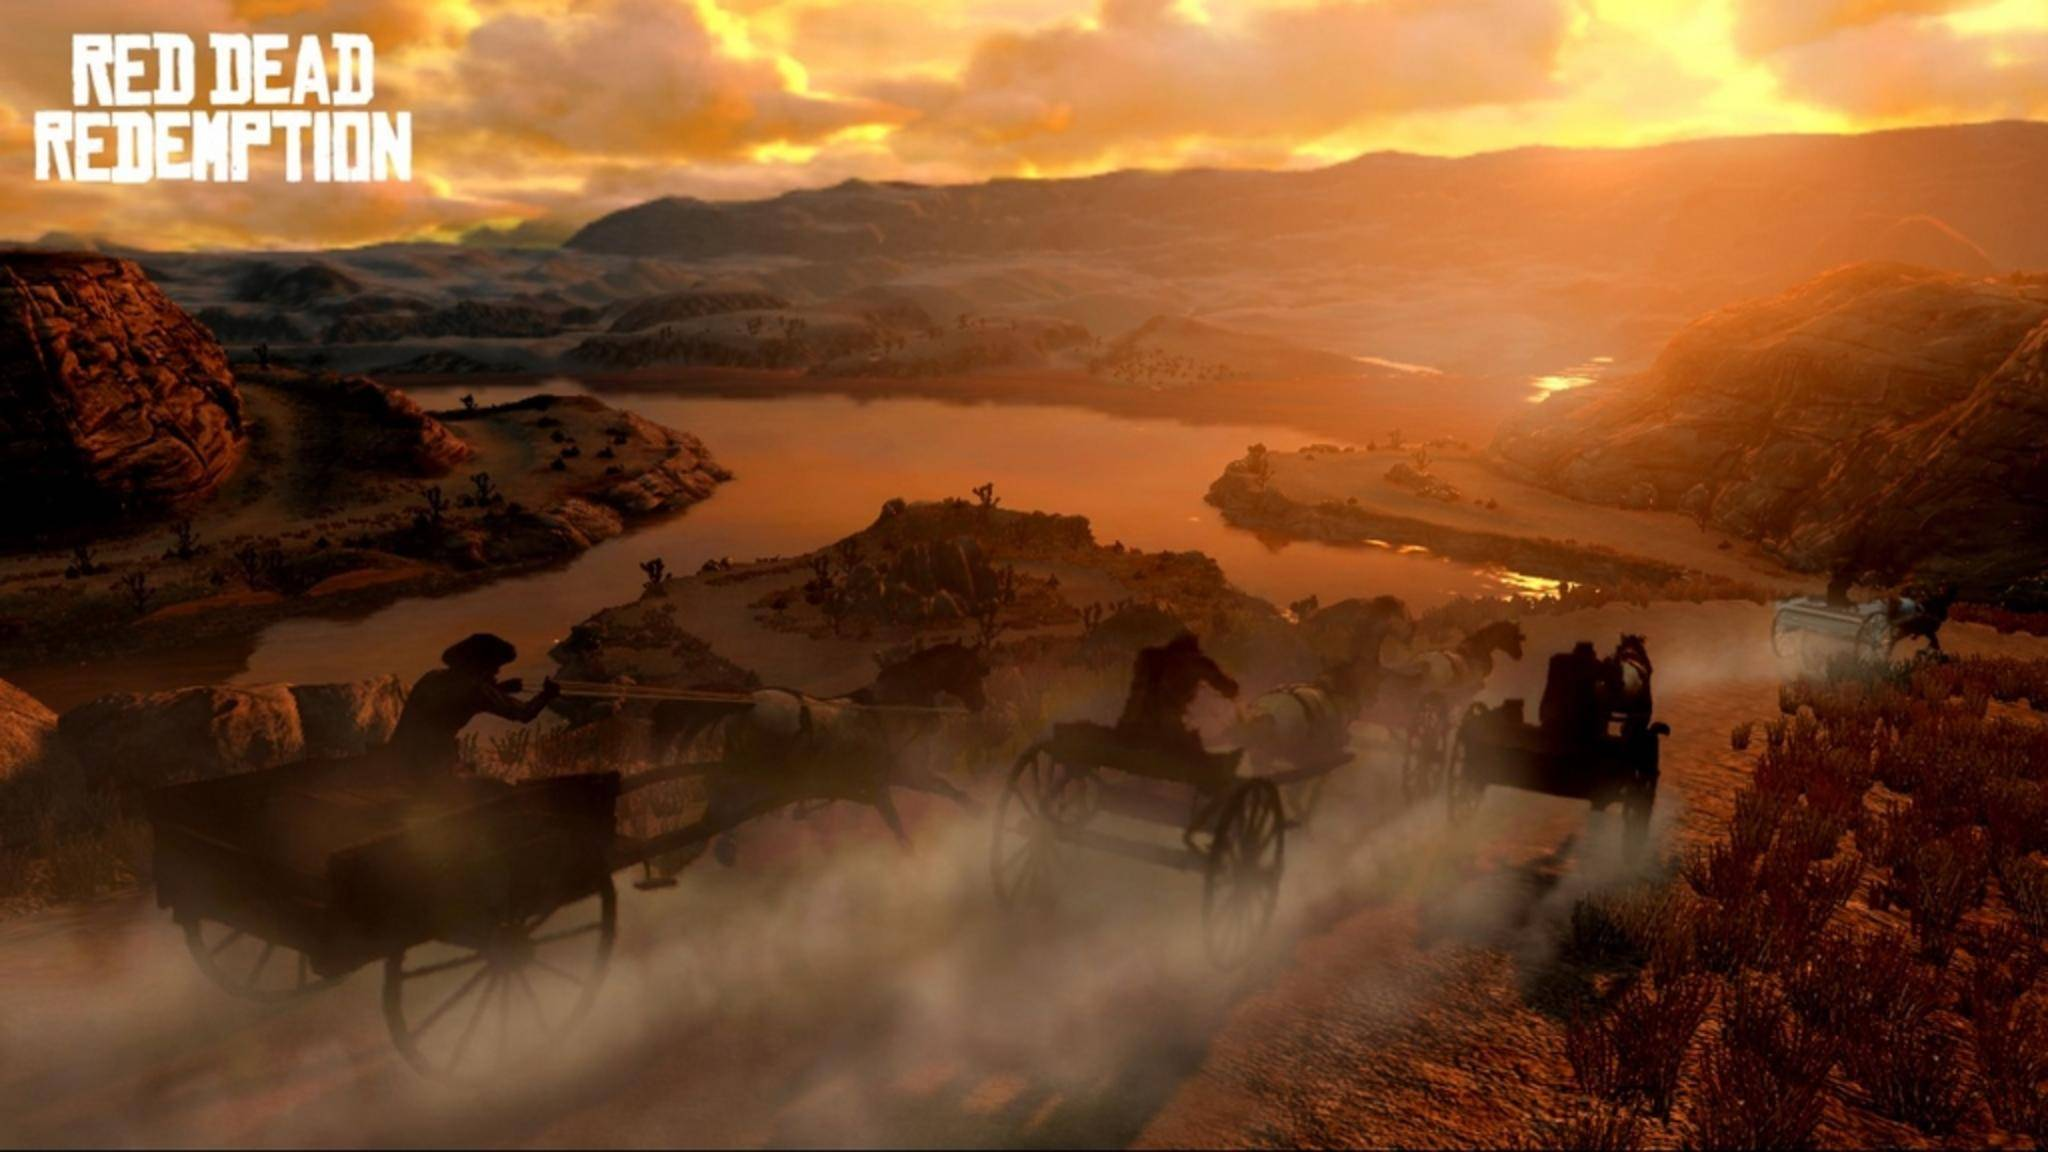 Red-Dead-Redemption-10